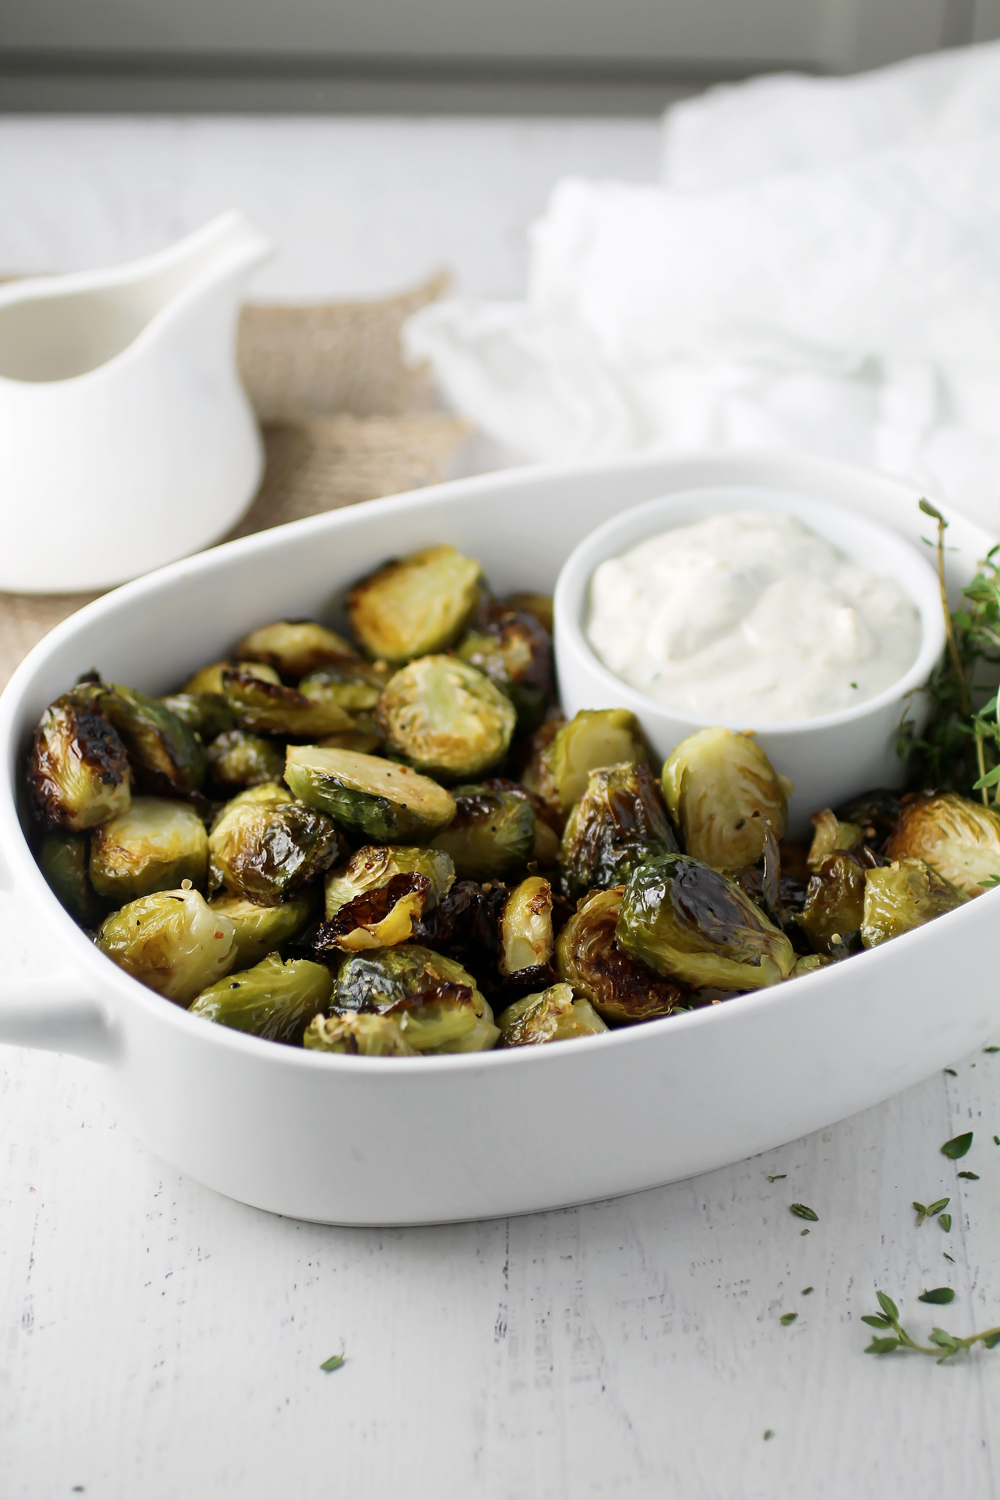 Roasted Brussels Sprouts with Skinny Garlic Aioli